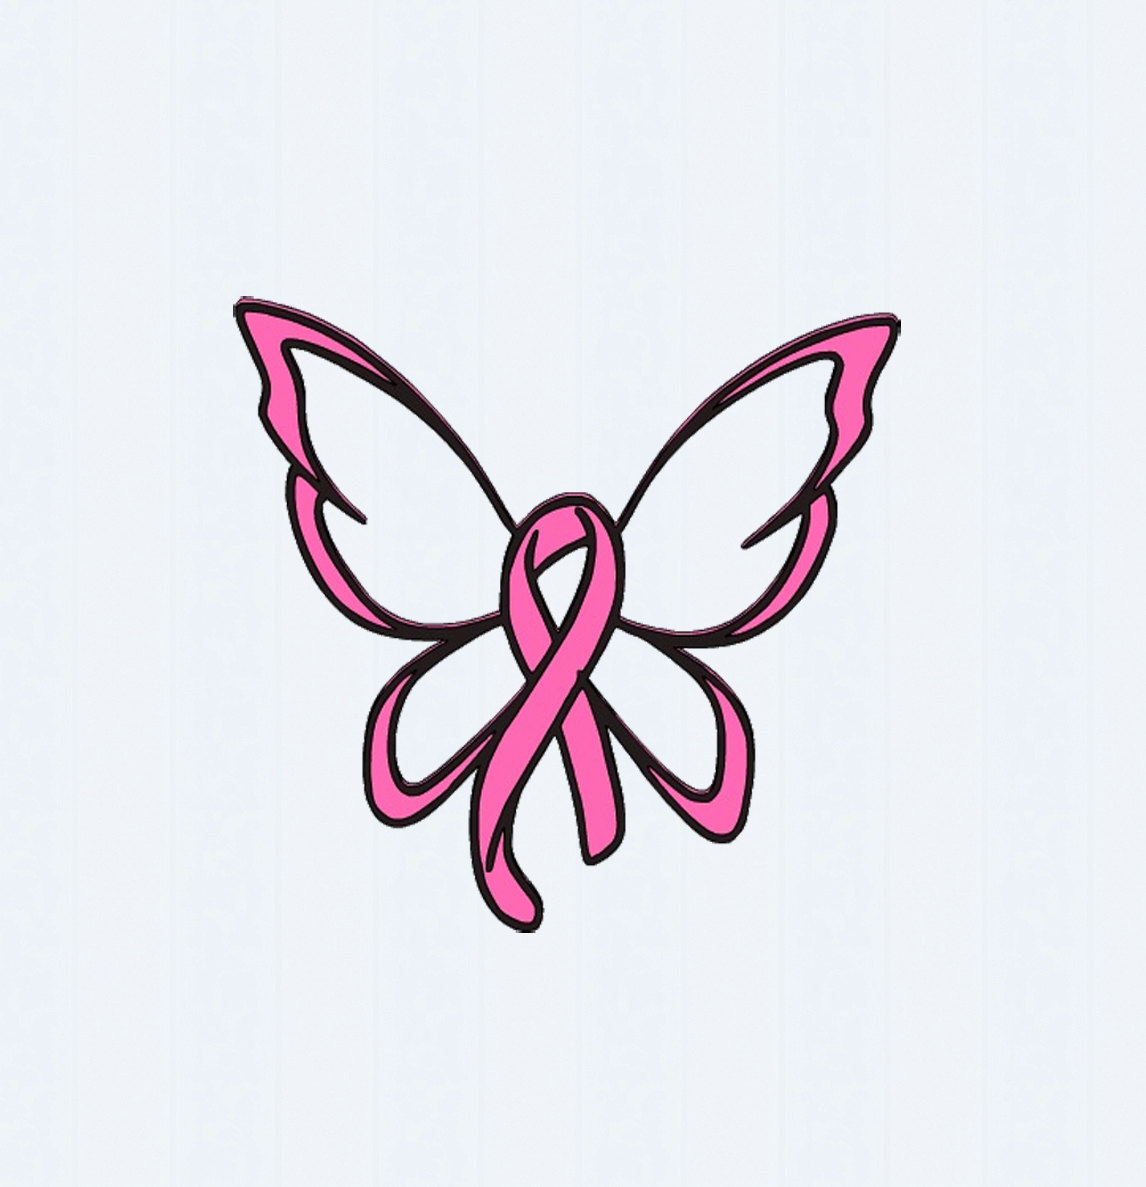 Butterfly on cancer ribbon clipart clipground similiar cancer ribbon butterfly keywords biocorpaavc Gallery